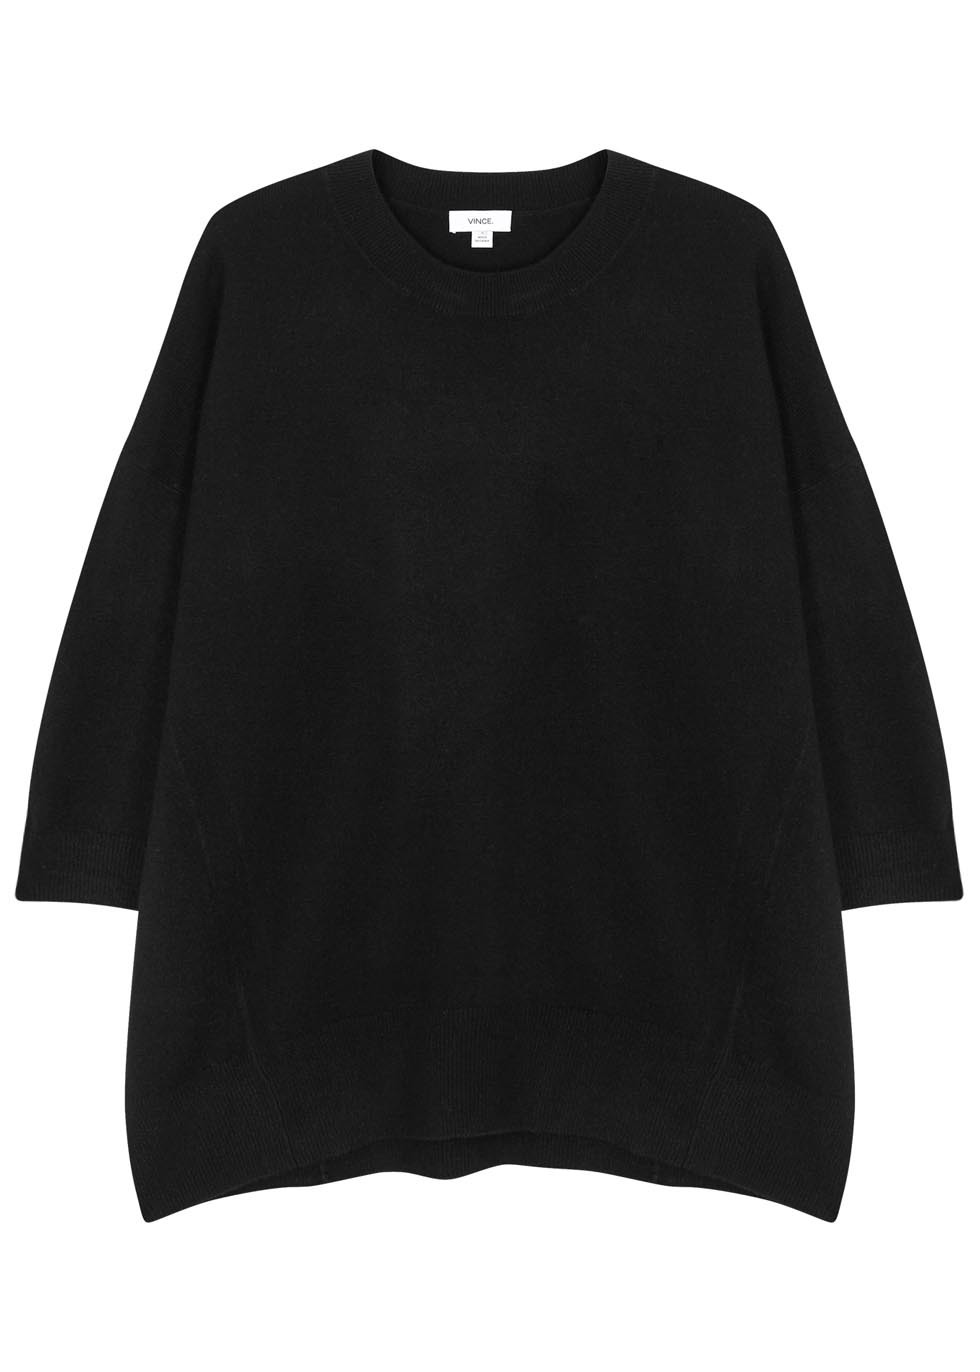 Black Cashmere Blend Jumper - pattern: plain; style: standard; predominant colour: black; occasions: casual; length: standard; fit: loose; neckline: crew; sleeve length: long sleeve; sleeve style: standard; texture group: knits/crochet; pattern type: knitted - fine stitch; fibres: cashmere - mix; season: s/s 2016